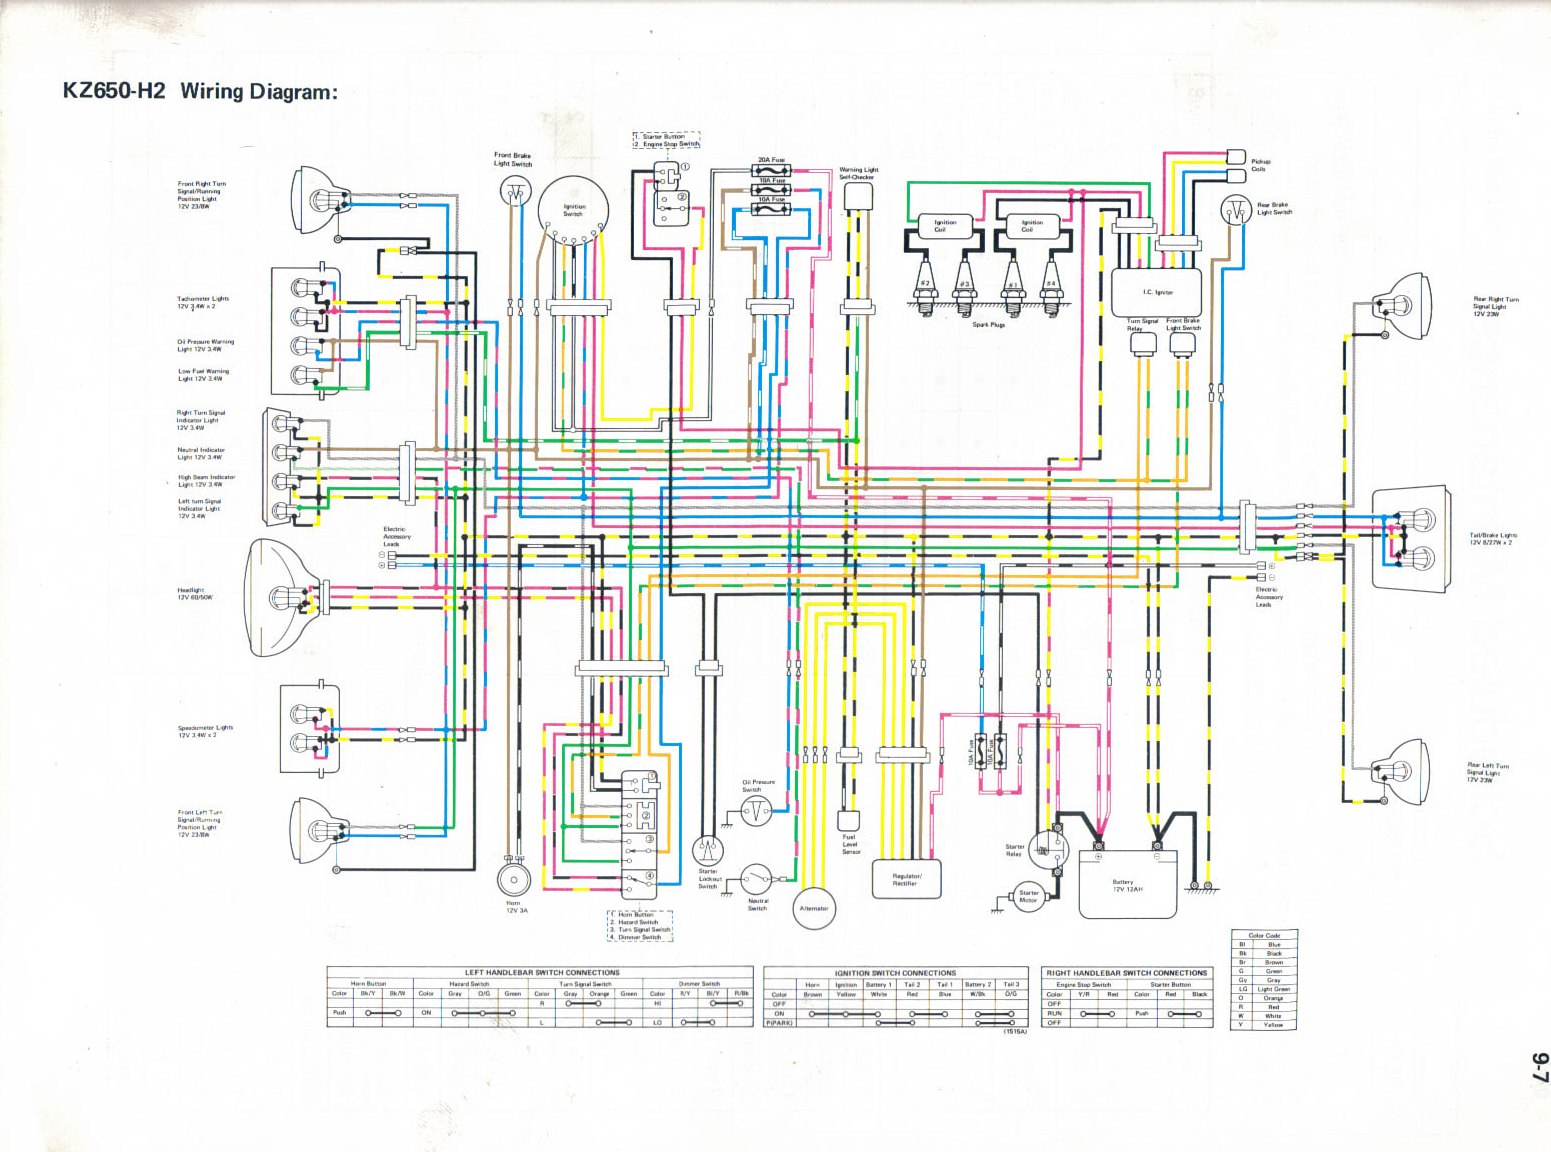 KZ650 H2 kawasaki kz650 wiring diagram vulcan 1500 wiring diagram \u2022 free 1981 kawasaki 440 ltd wiring diagram at bayanpartner.co